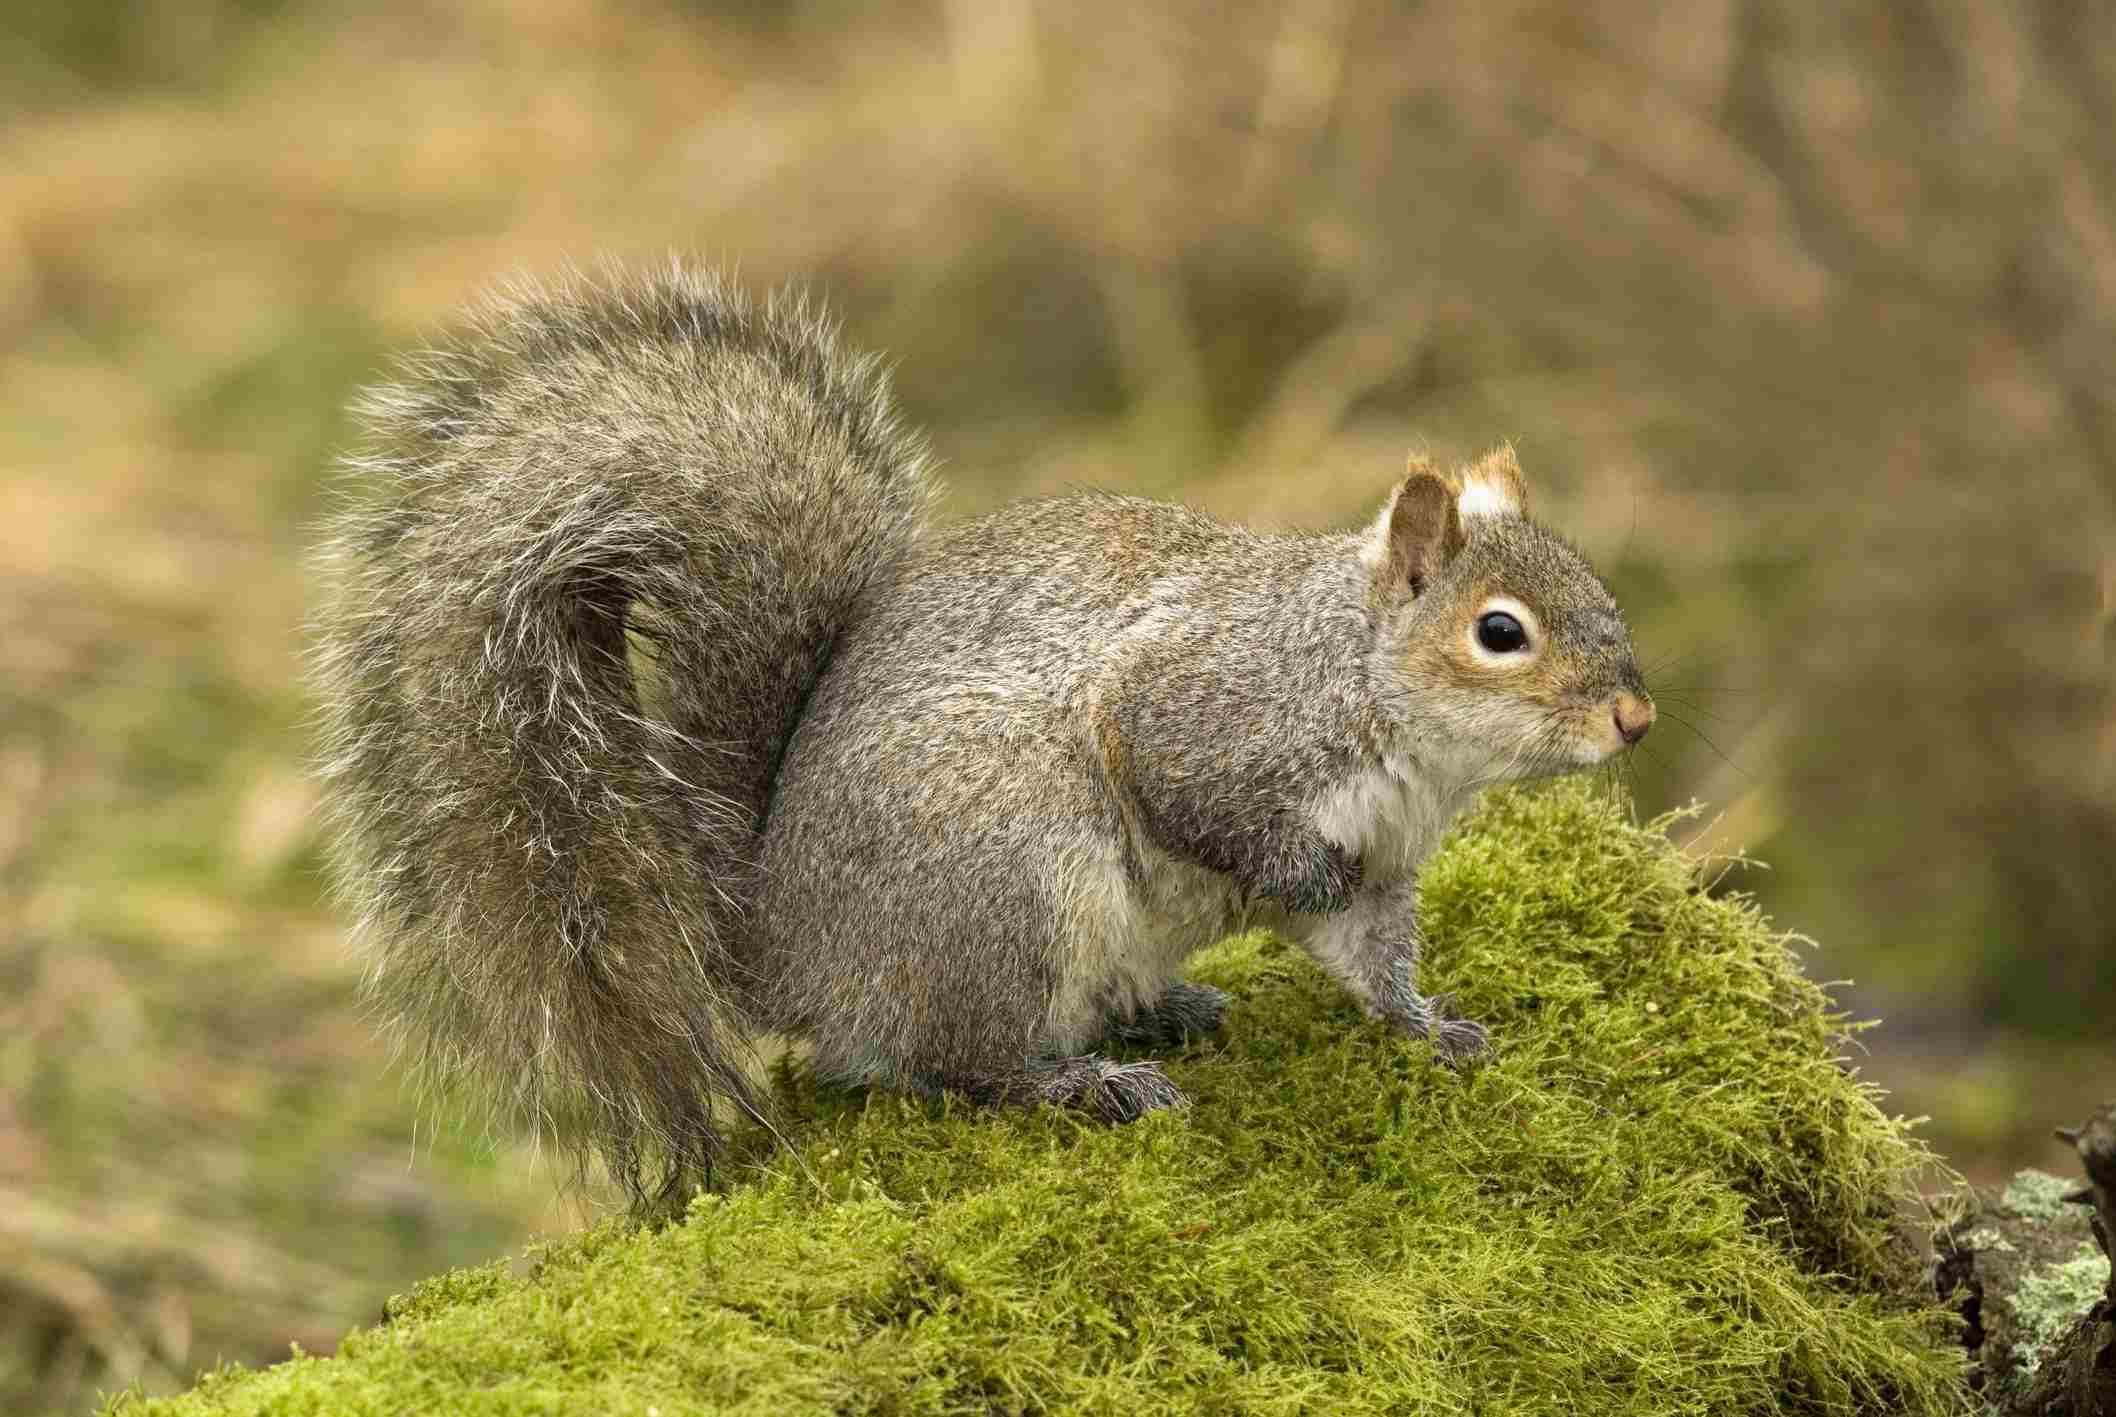 Squirrel sitting on a mossy log outside.